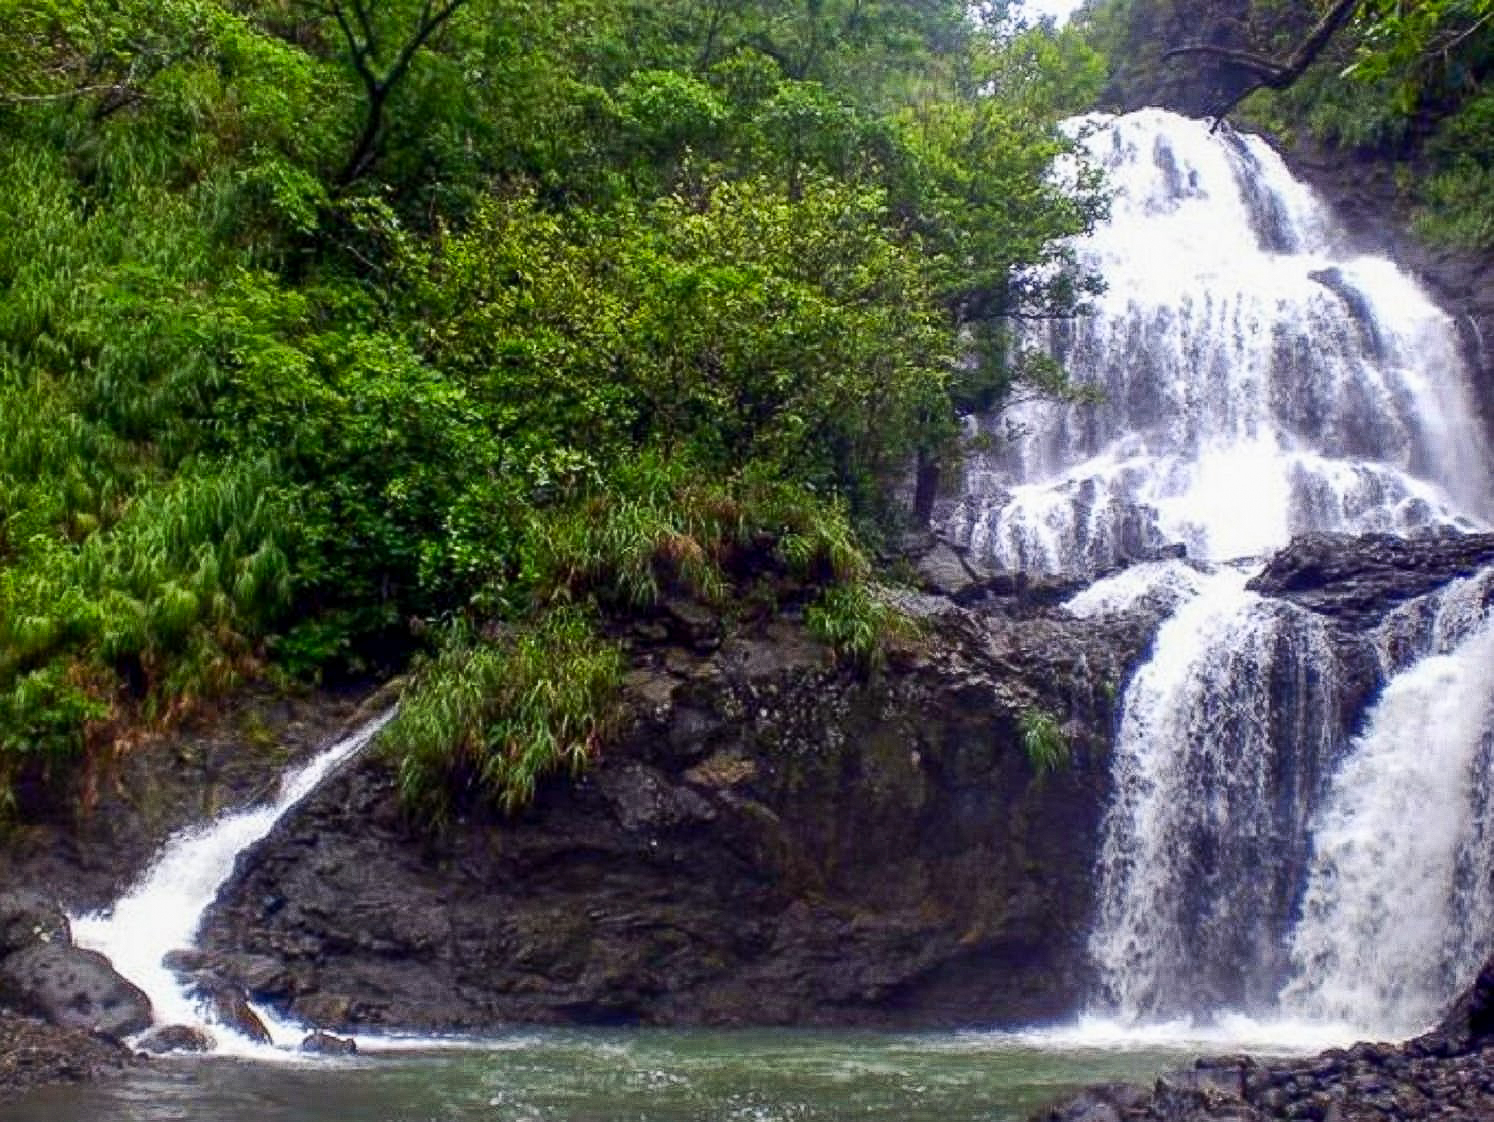 Real Quezon Waterfalls Day Tour with Transfers from Manila